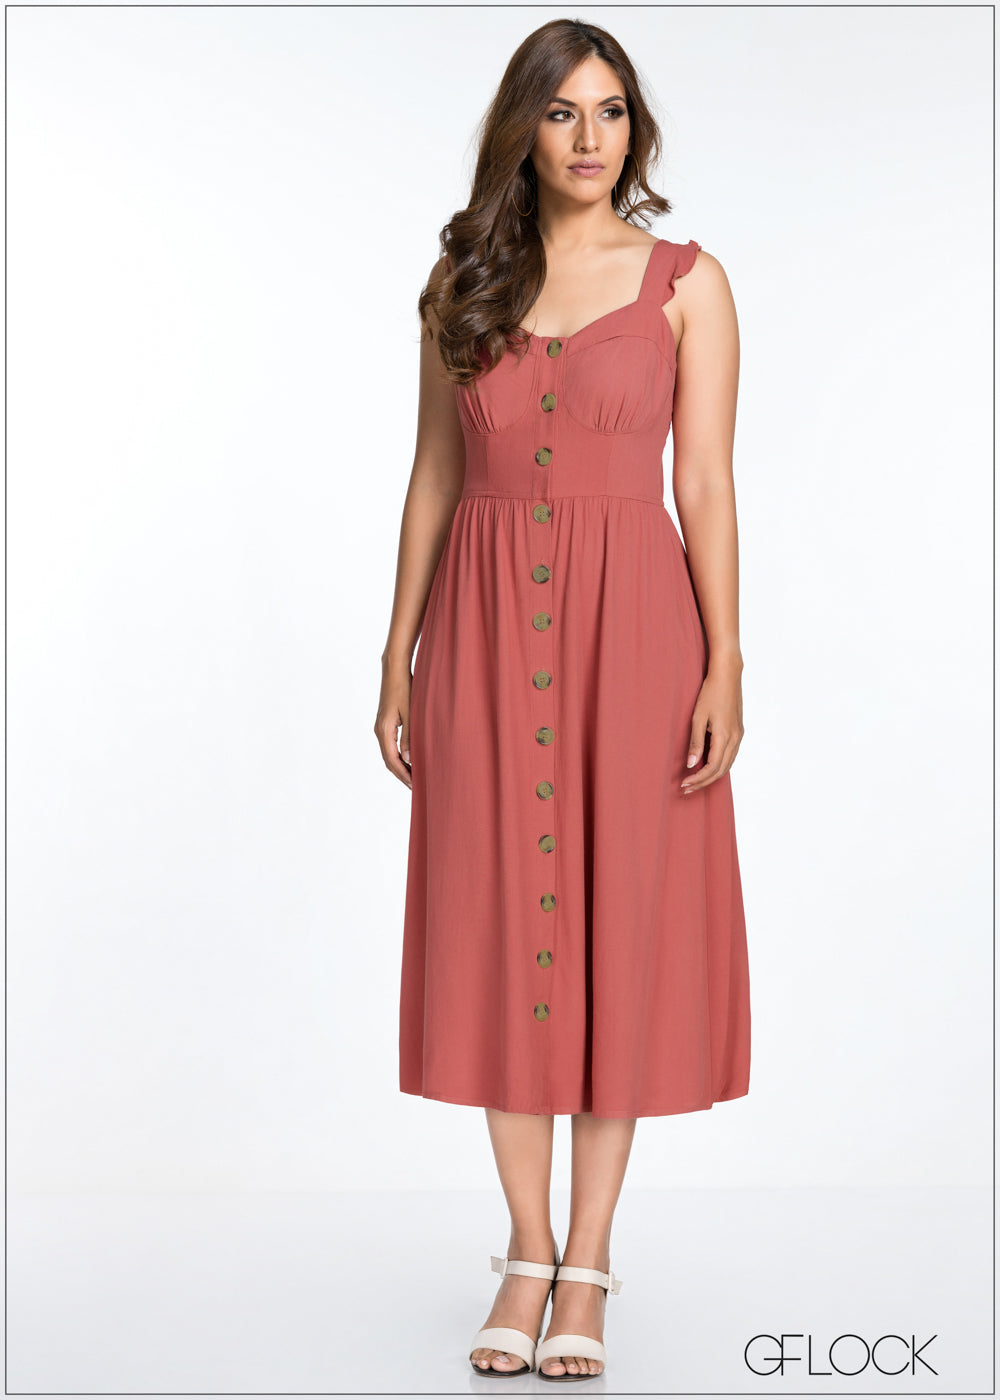 Front Button Detail Midi Dress - GFLOCK.LK